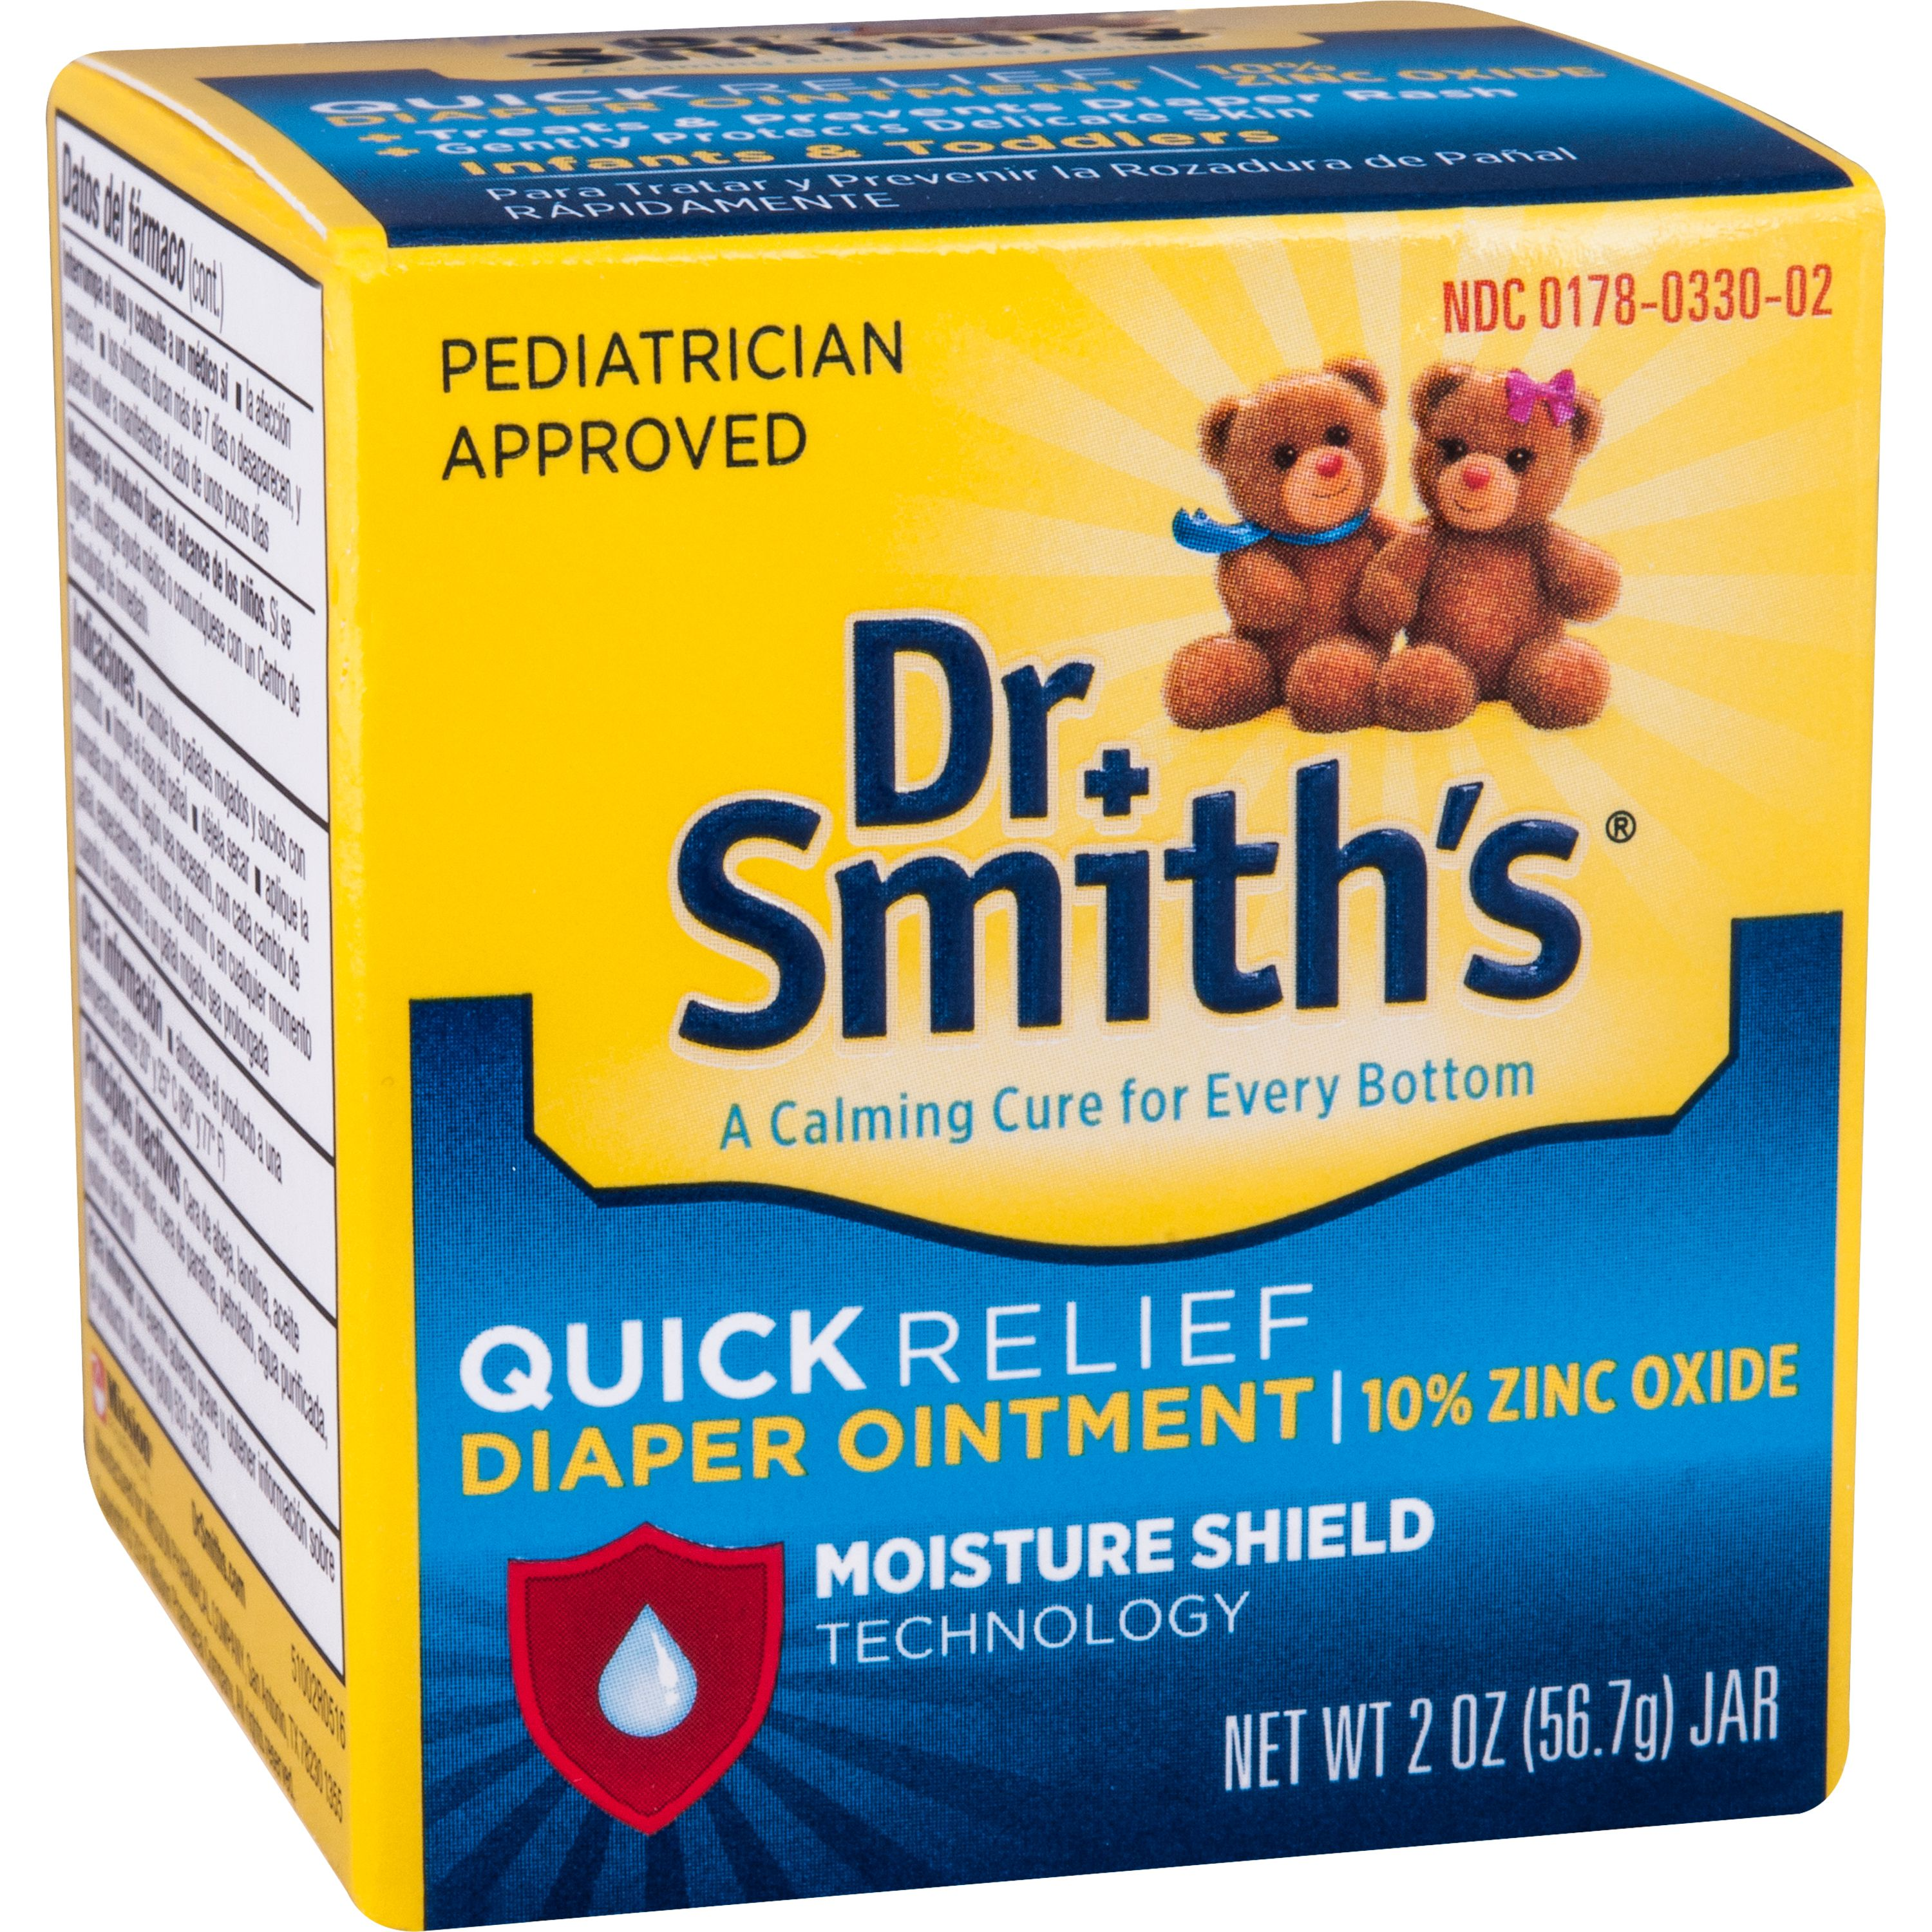 Dr. Smith's Premium Blend Diaper Ointment, 2 oz